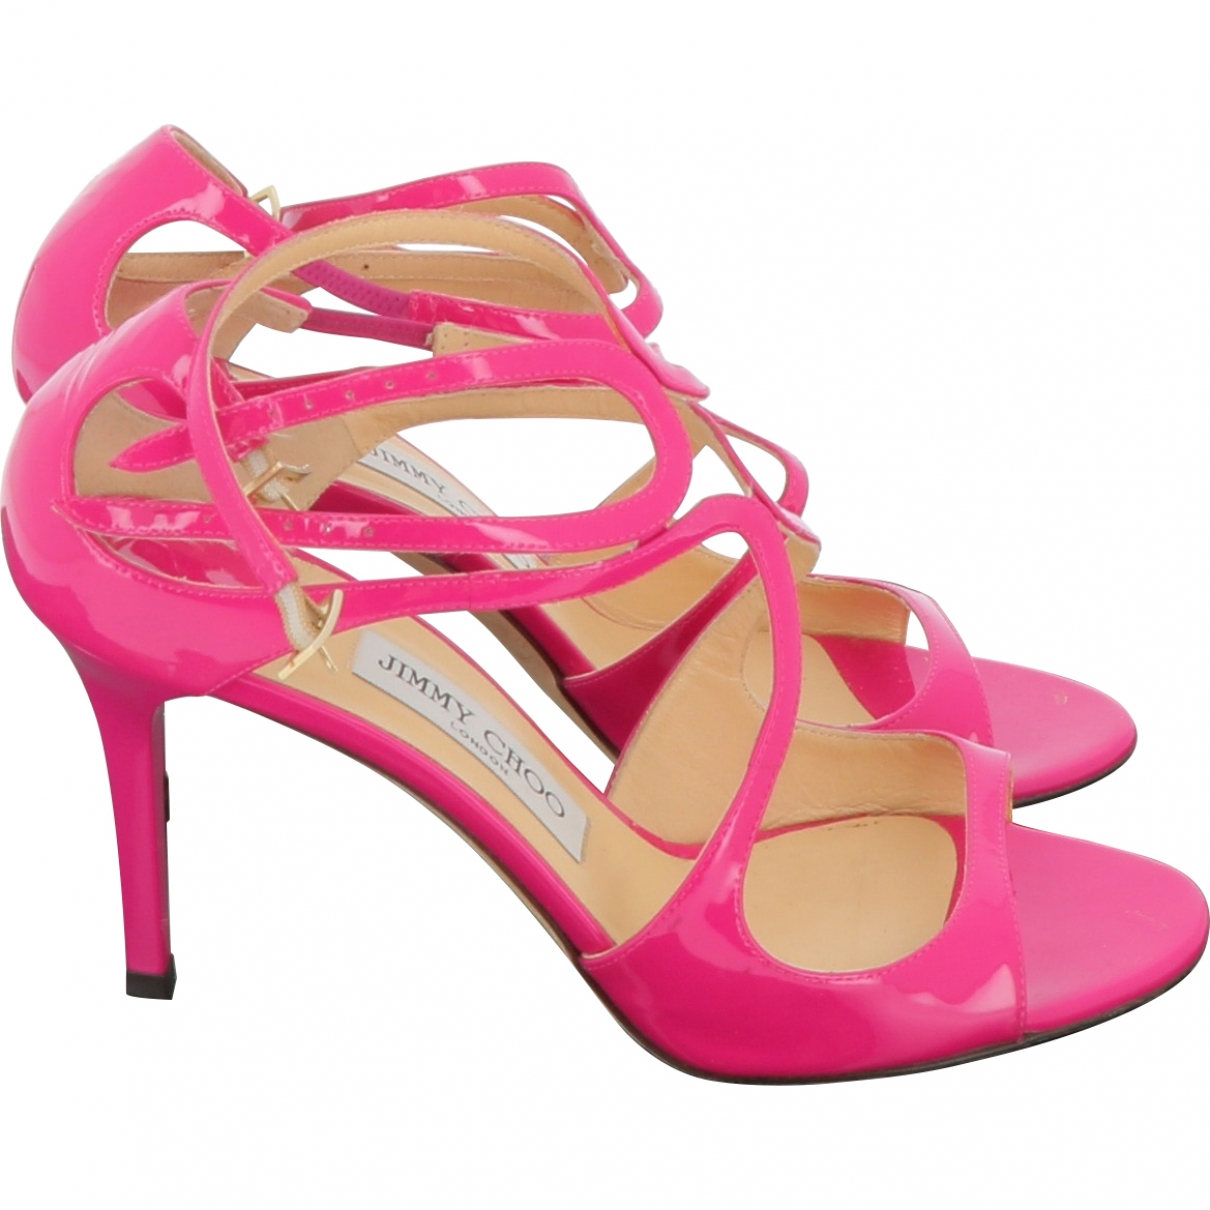 Jimmy Choo \N Pink Patent leather Sandals for Women 38.5 EU